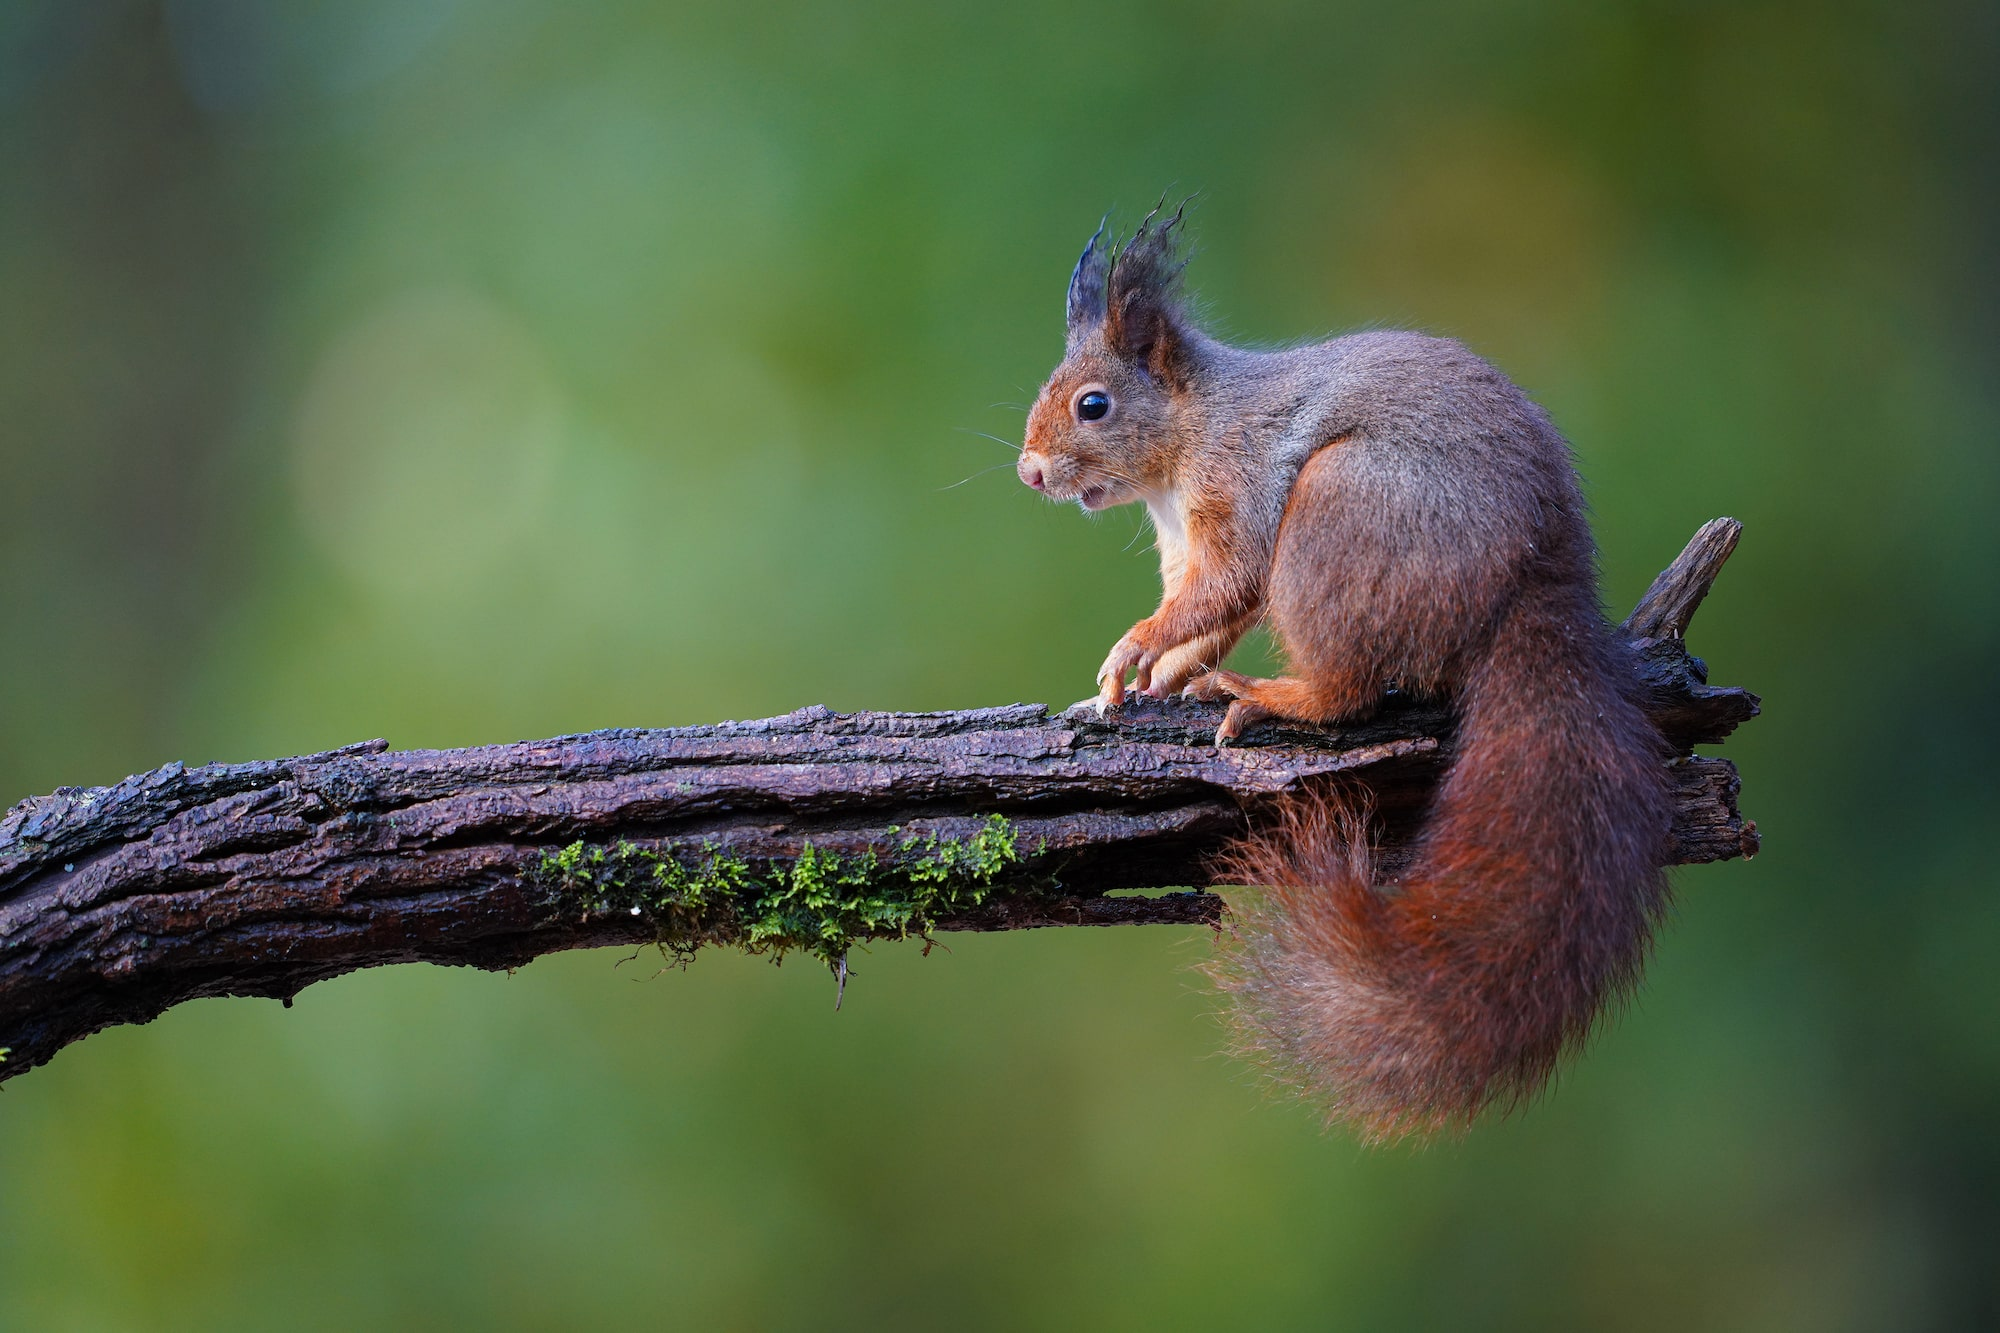 gustav kiburg sony alpha 7r4 a squirrel at the end of a branch looking surprised